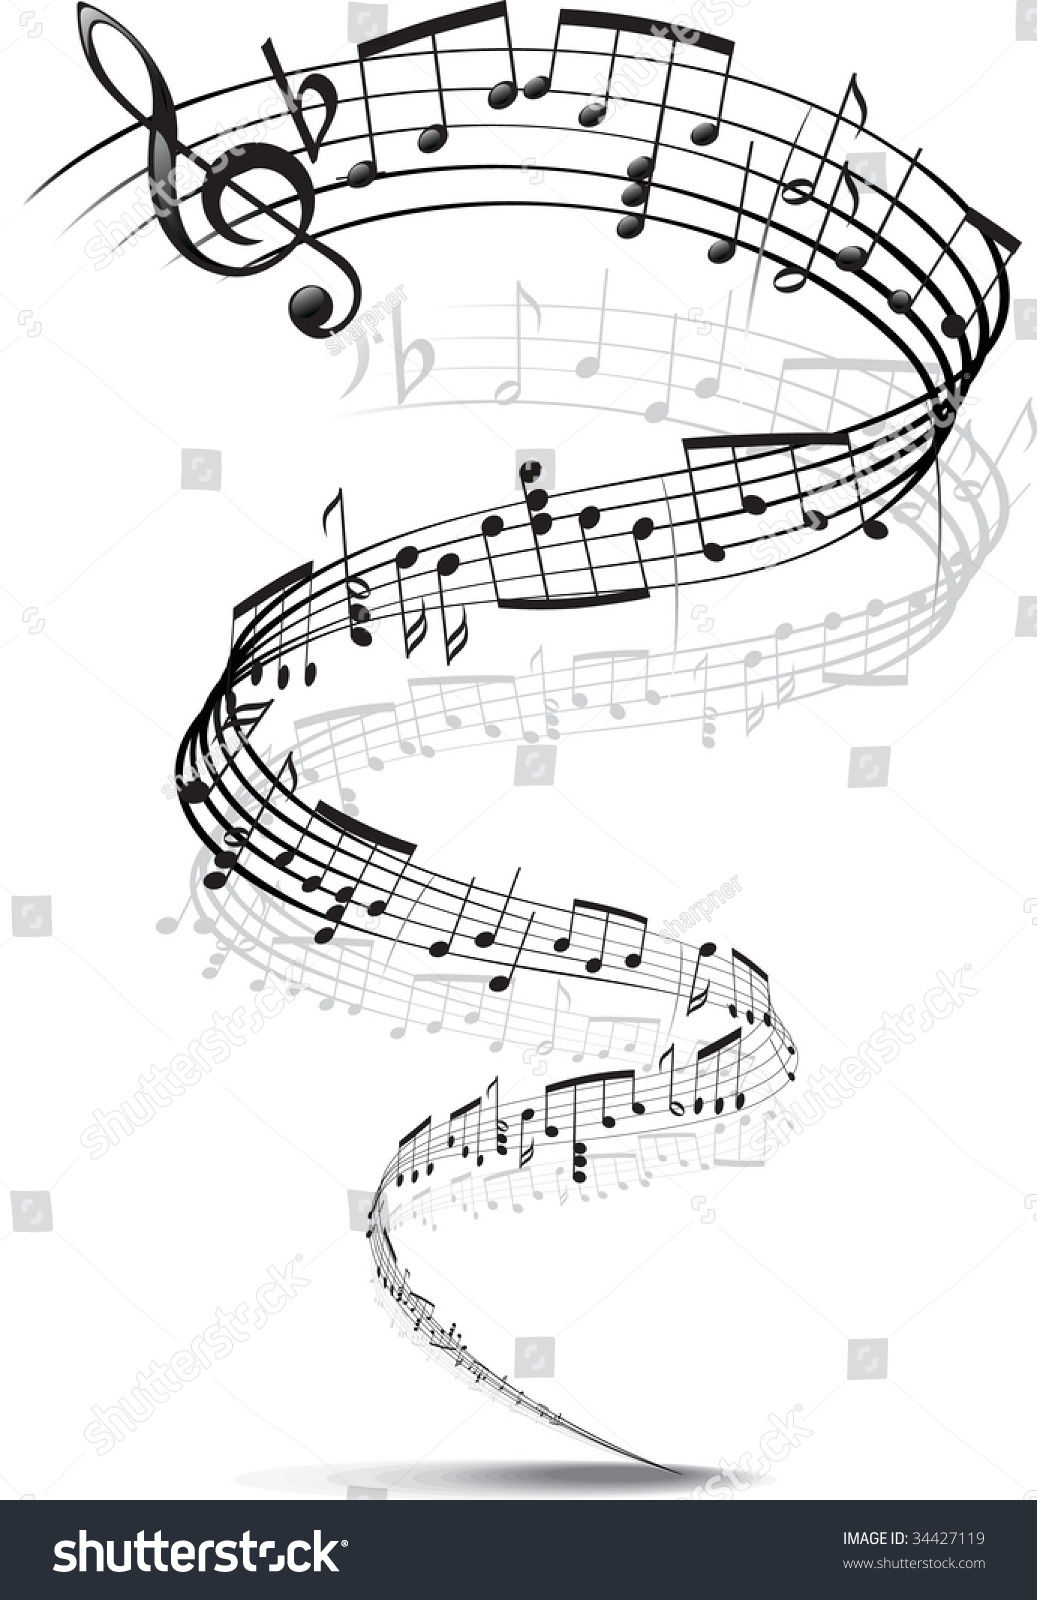 music notes twisted into spiral stock vector 34427119